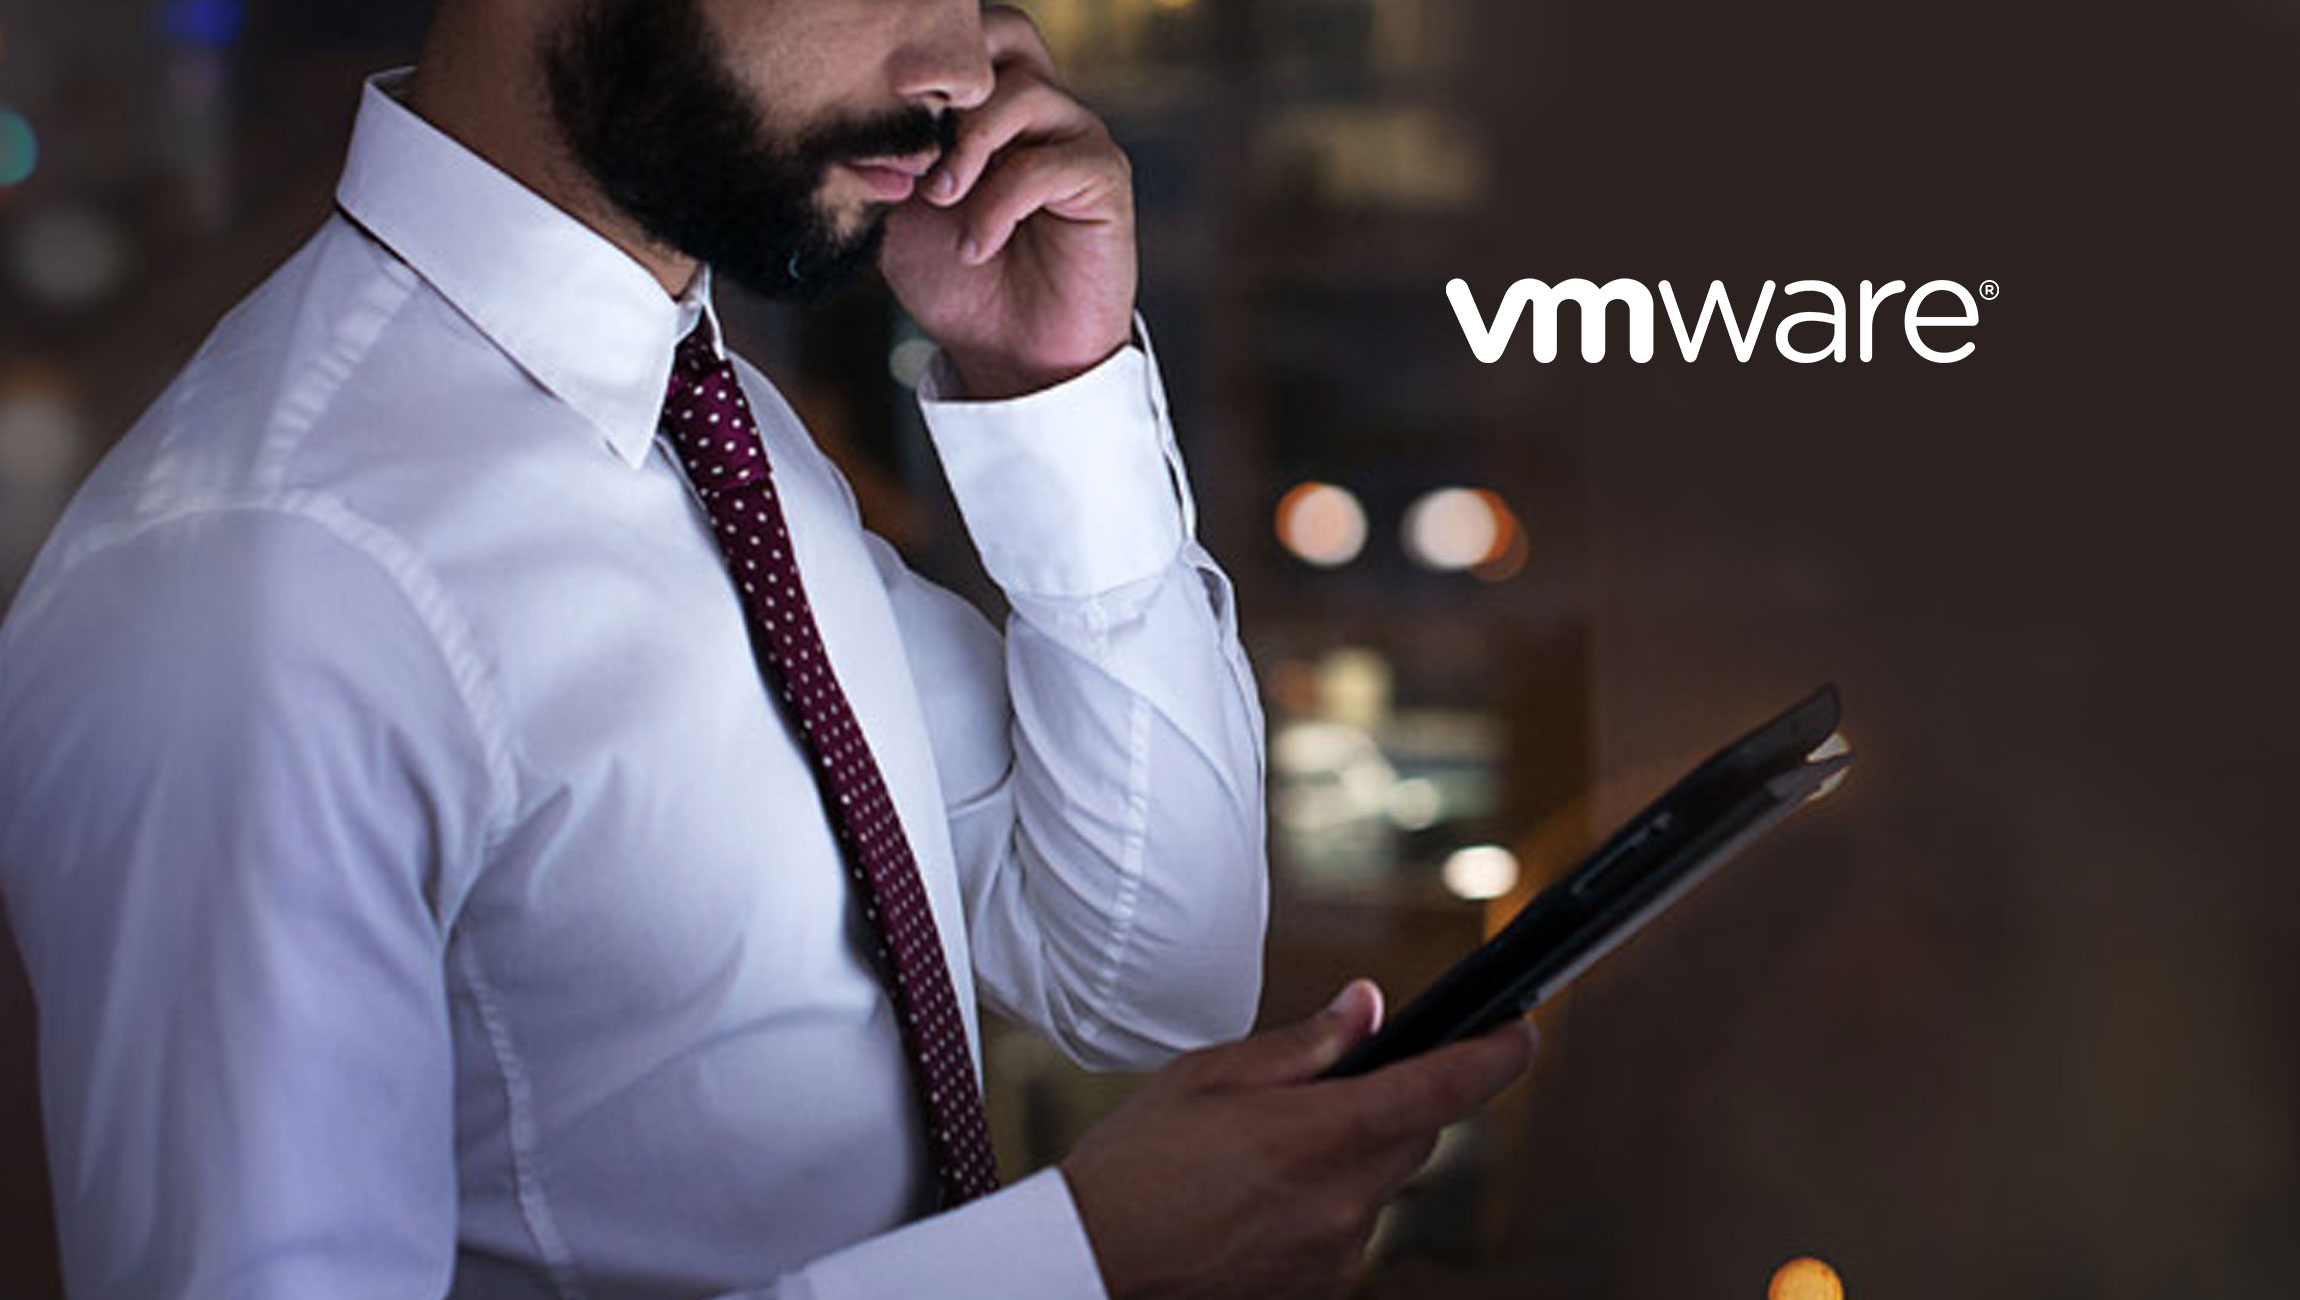 VMware Extends No. 1 Ranking in Cloud System and Service Management According to Global Analyst Firm